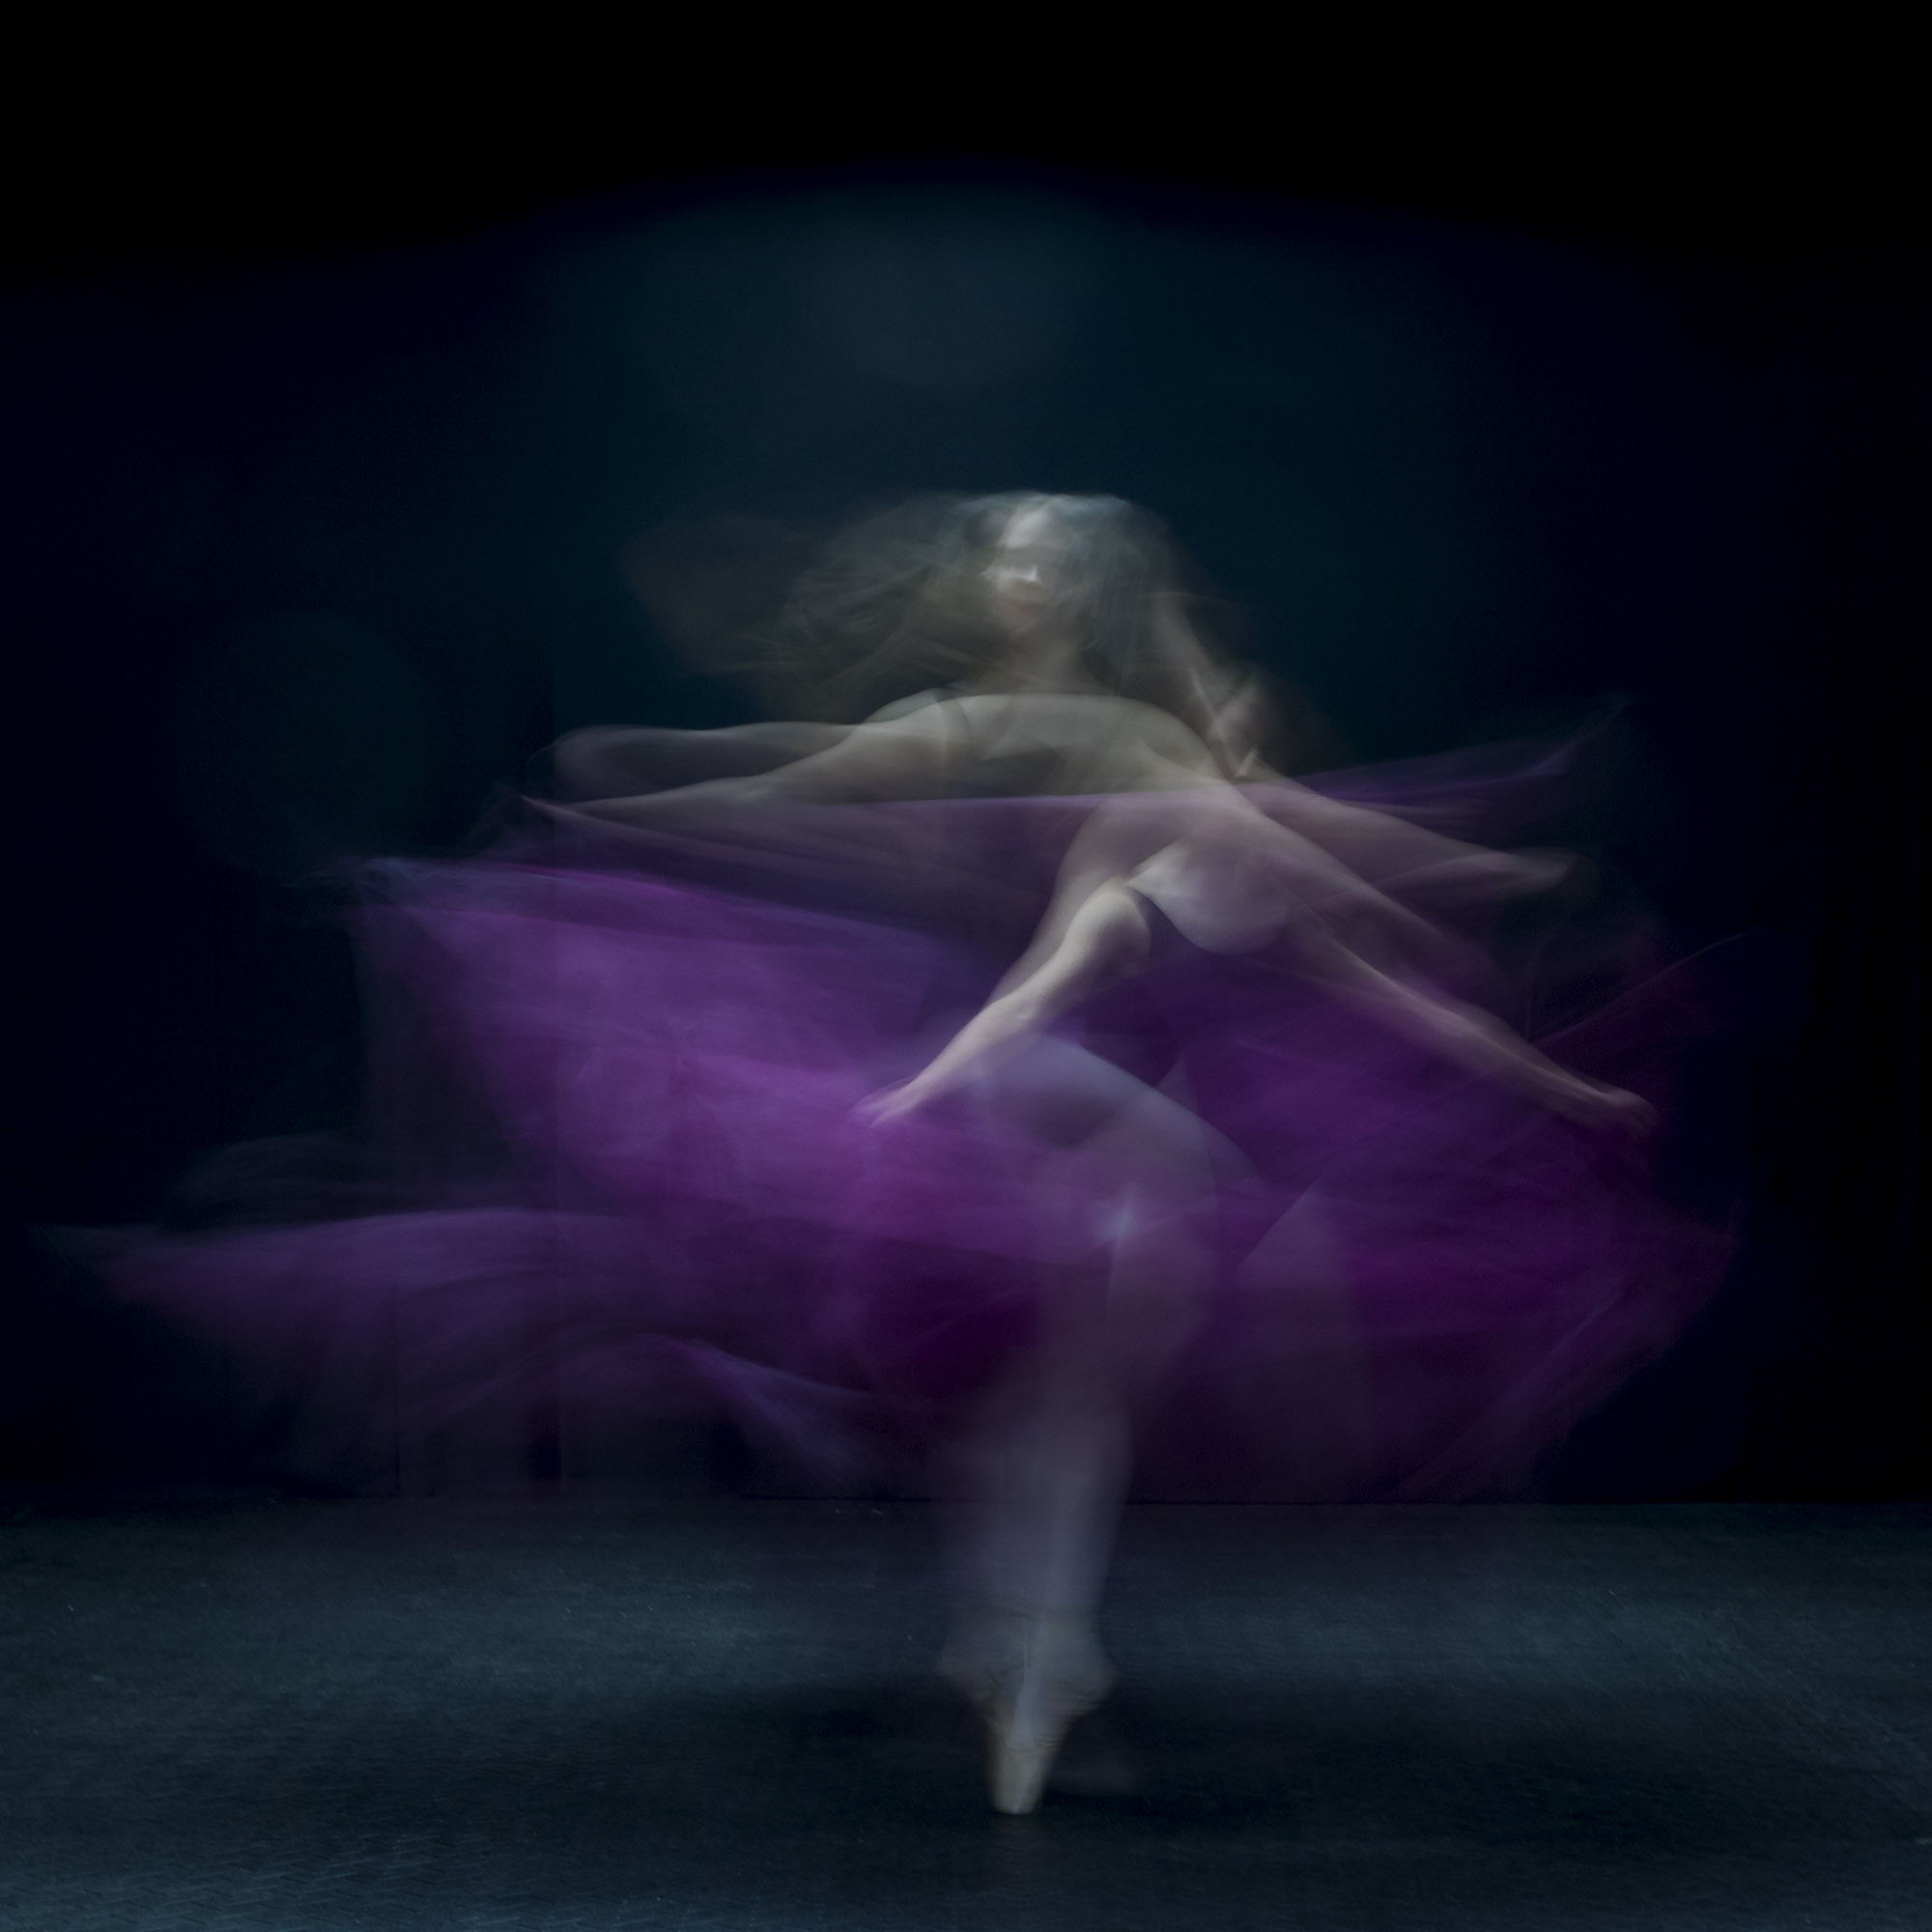 Long exposure twirl with fabrics